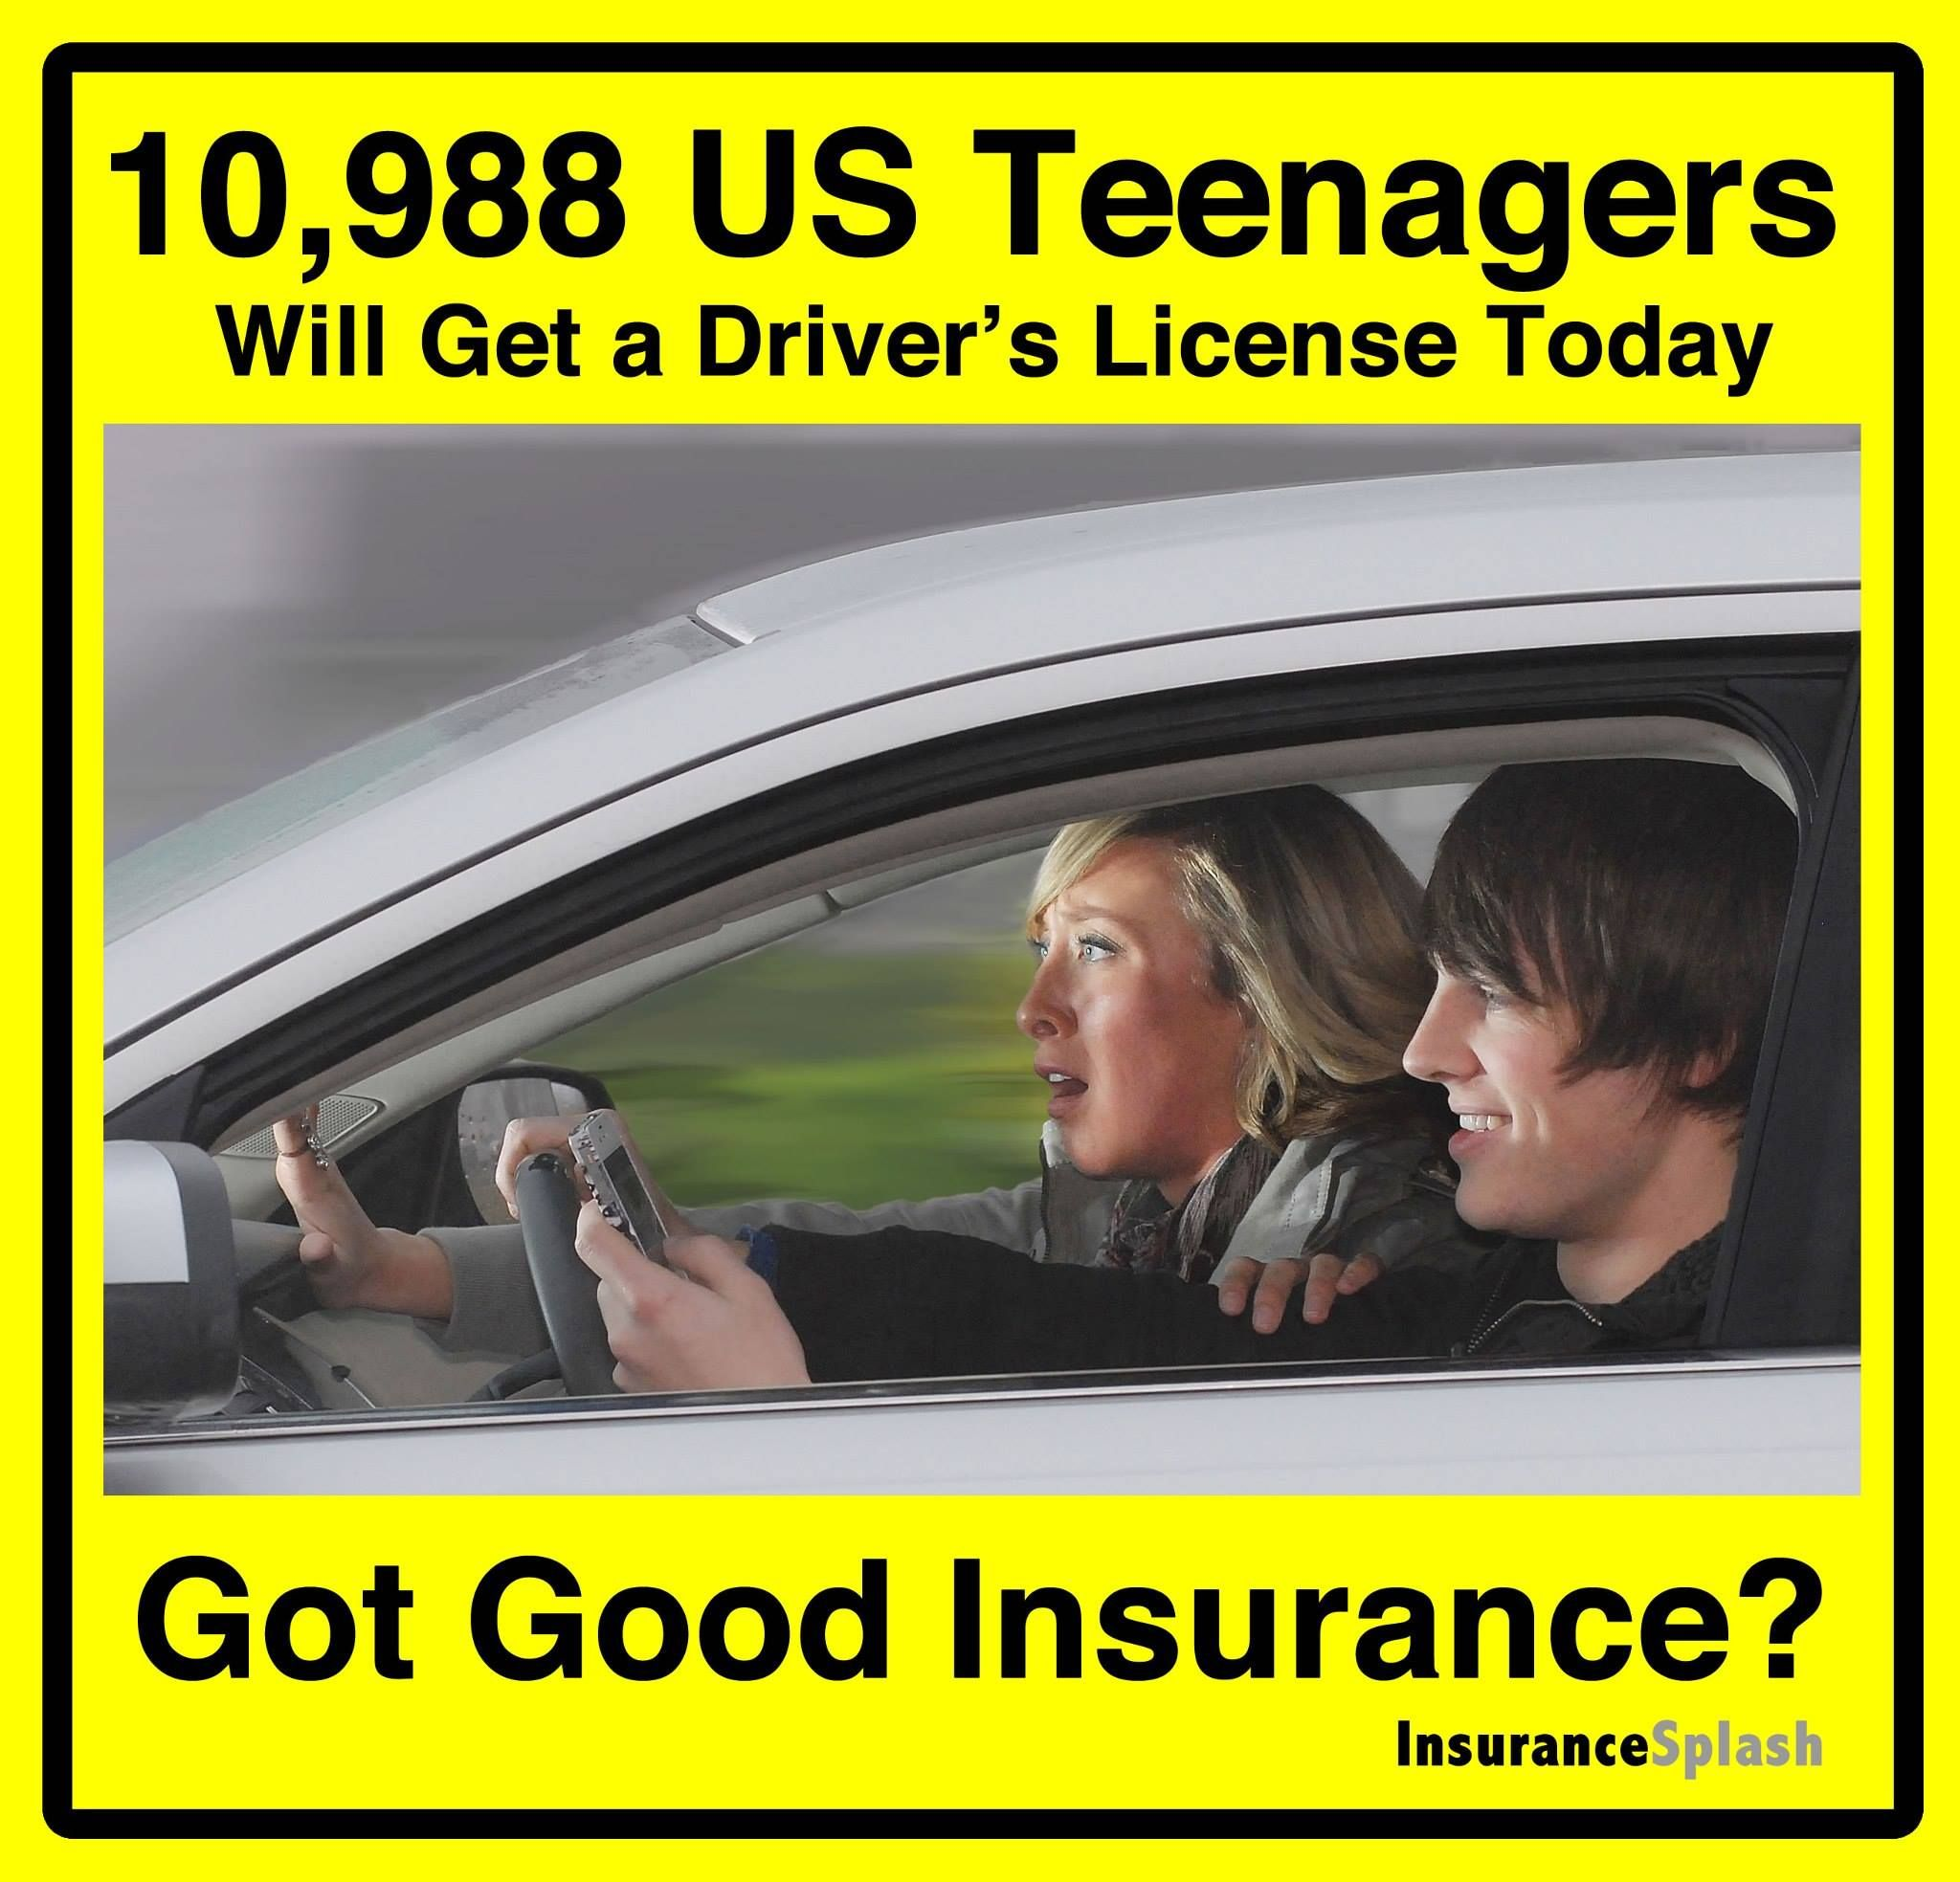 Scary thought... Insurance sales, Life insurance policy